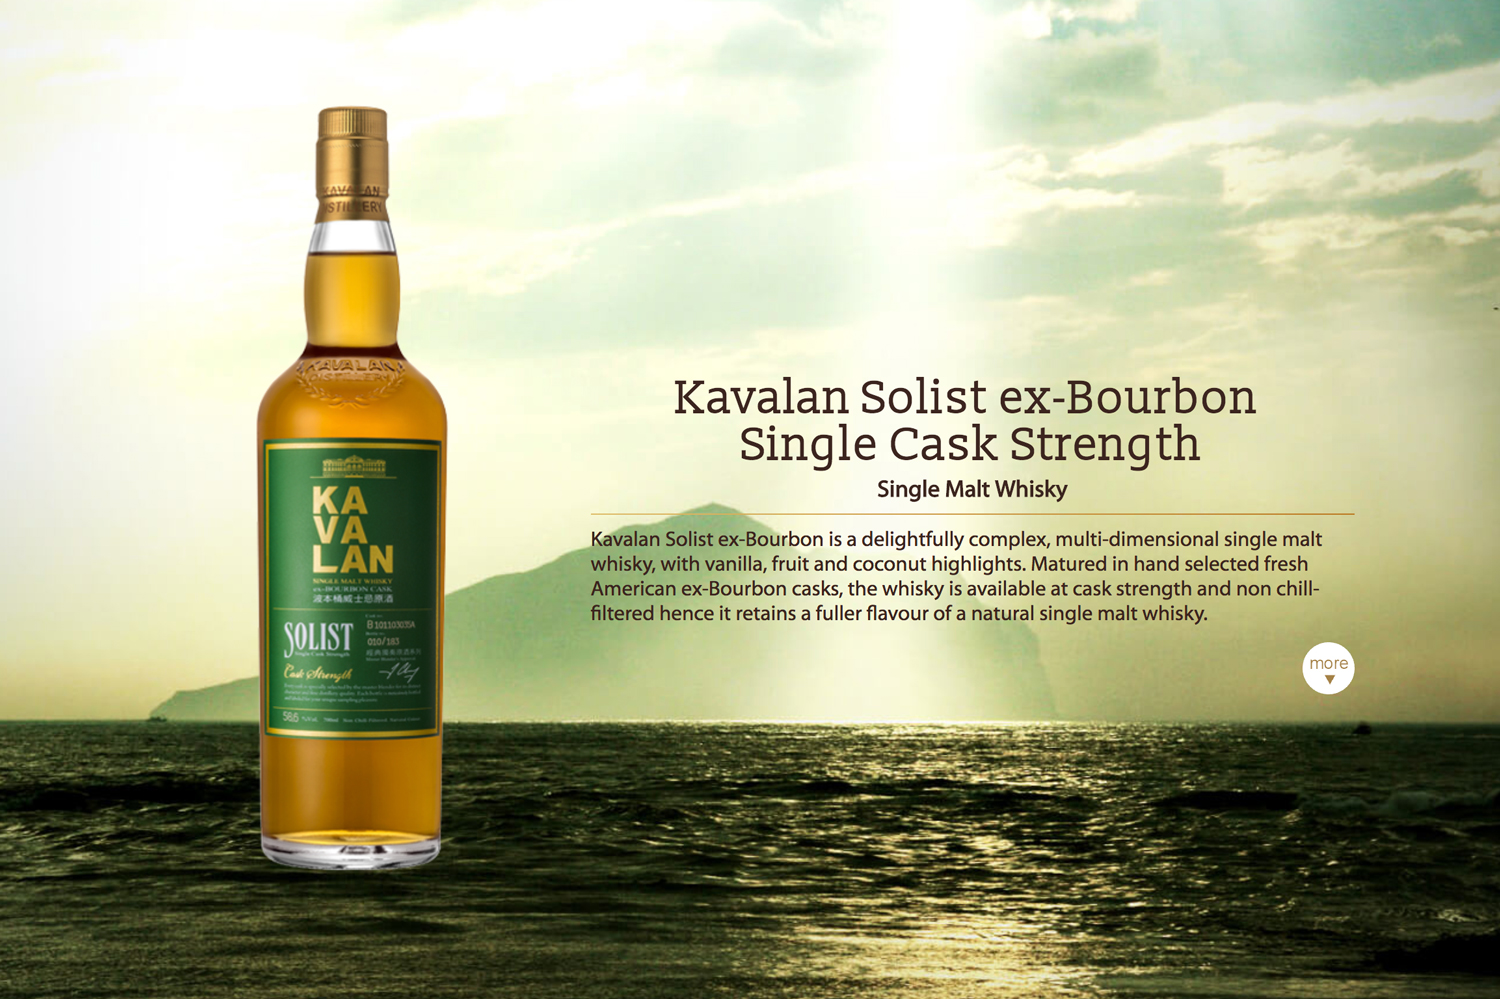 The Kavalan Solist ex-Bourbon Single Cask was also the Gold medal winners this year.